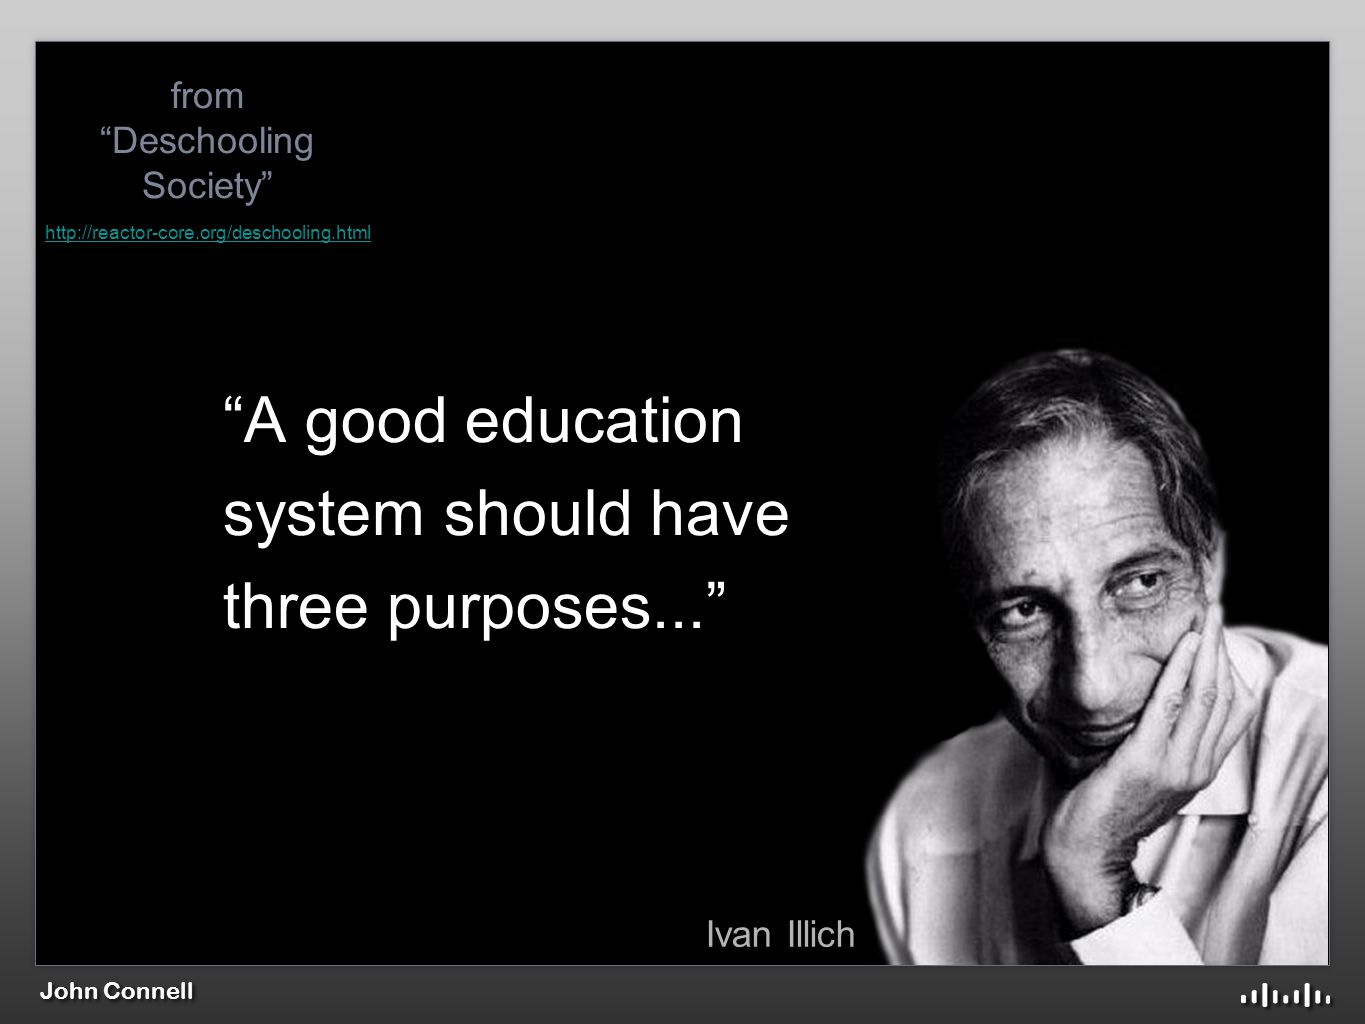 John Connell A good education system should have three purposes... Ivan Illich from Deschooling Society http://reactor-core.org/deschooling.html